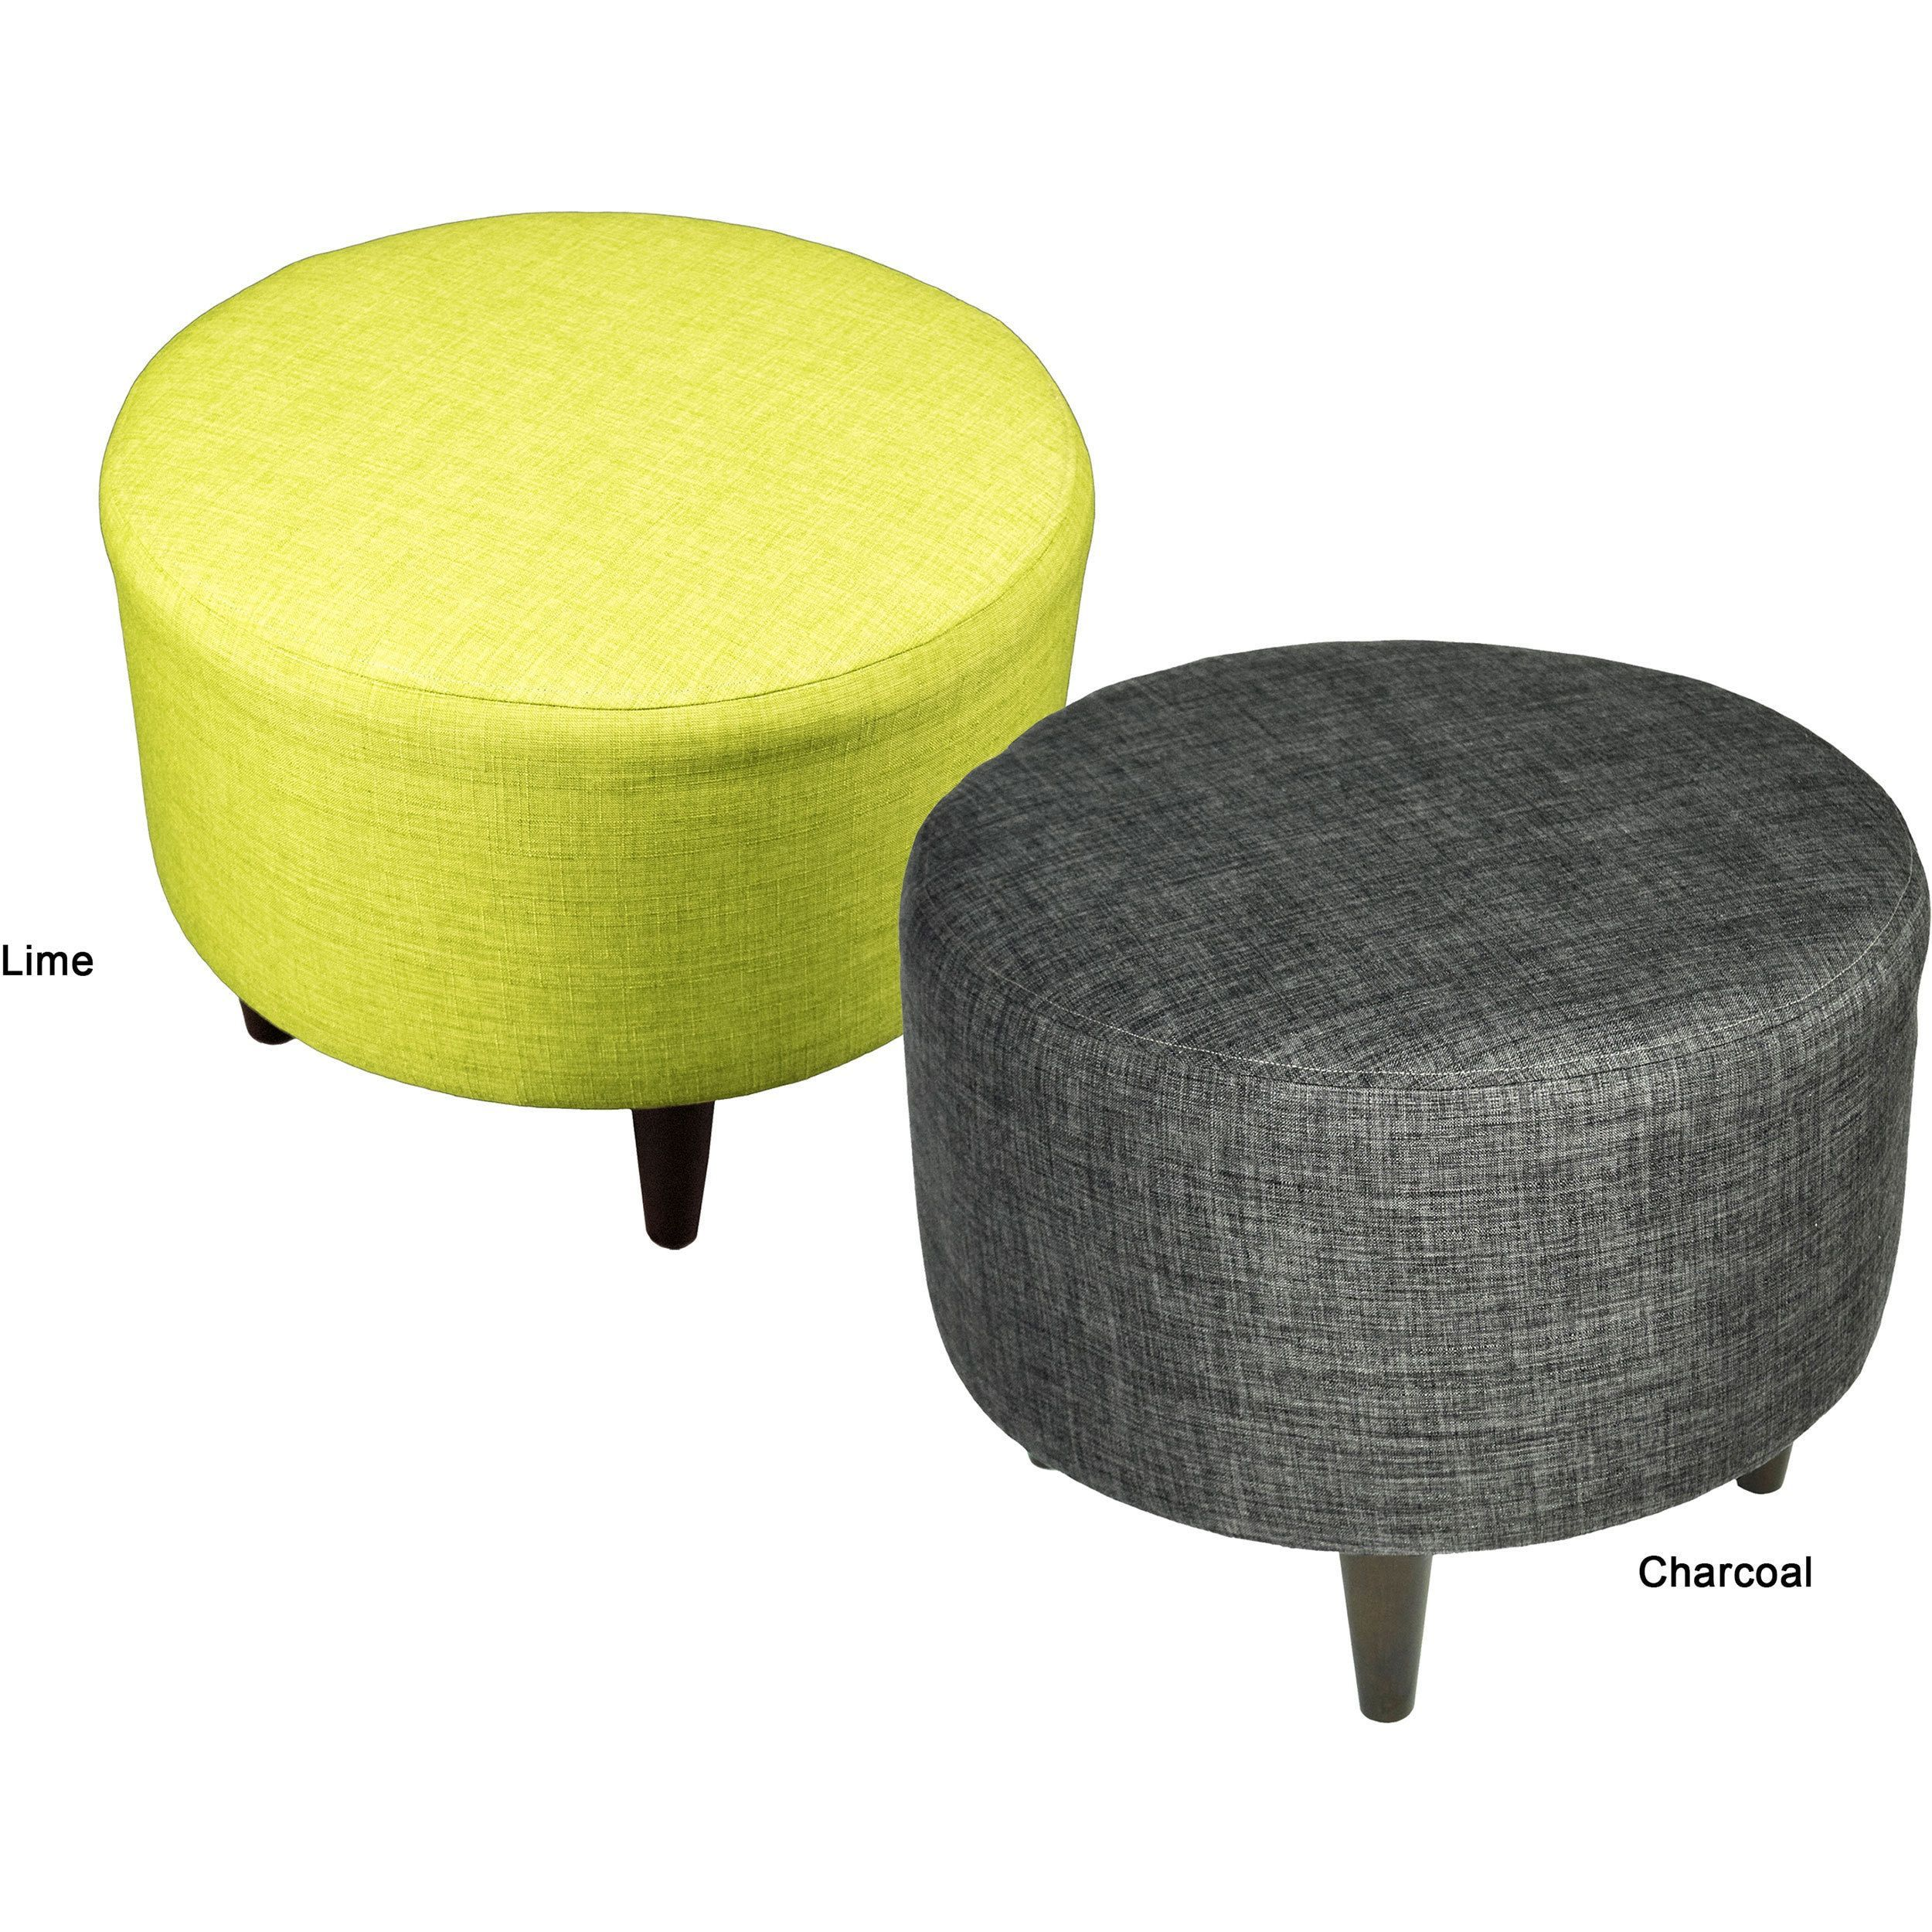 Beau Sophia Bennett Round Upholstered Ottoman · Upholstered OttomanUpholstered  Coffee TablesCoffee ...